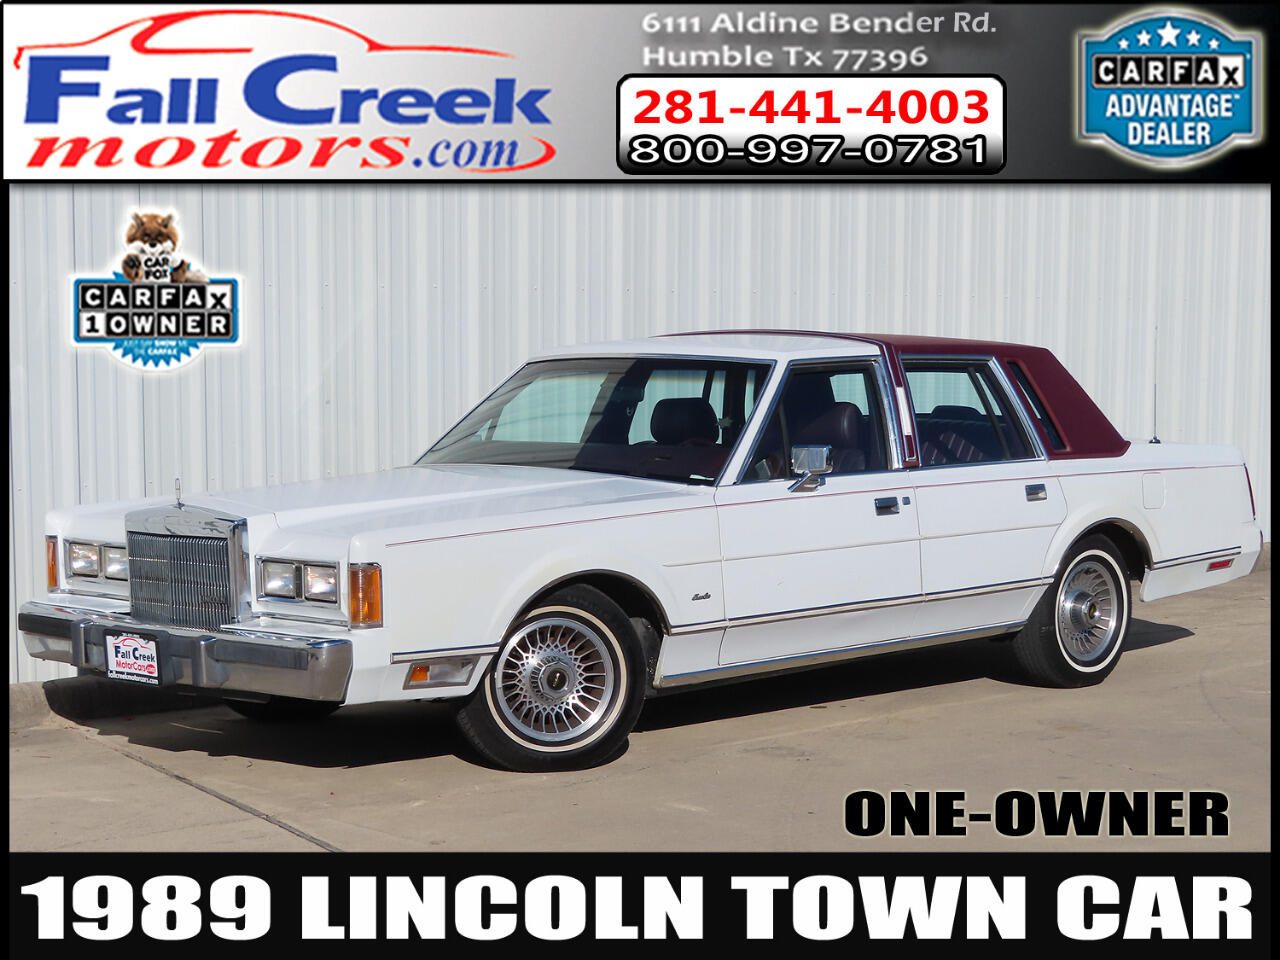 Used 1989 Lincoln Town Car Town Car For Sale In Humble Kingwood Atascoci Tx 77396 Fall Creek Motor Cars